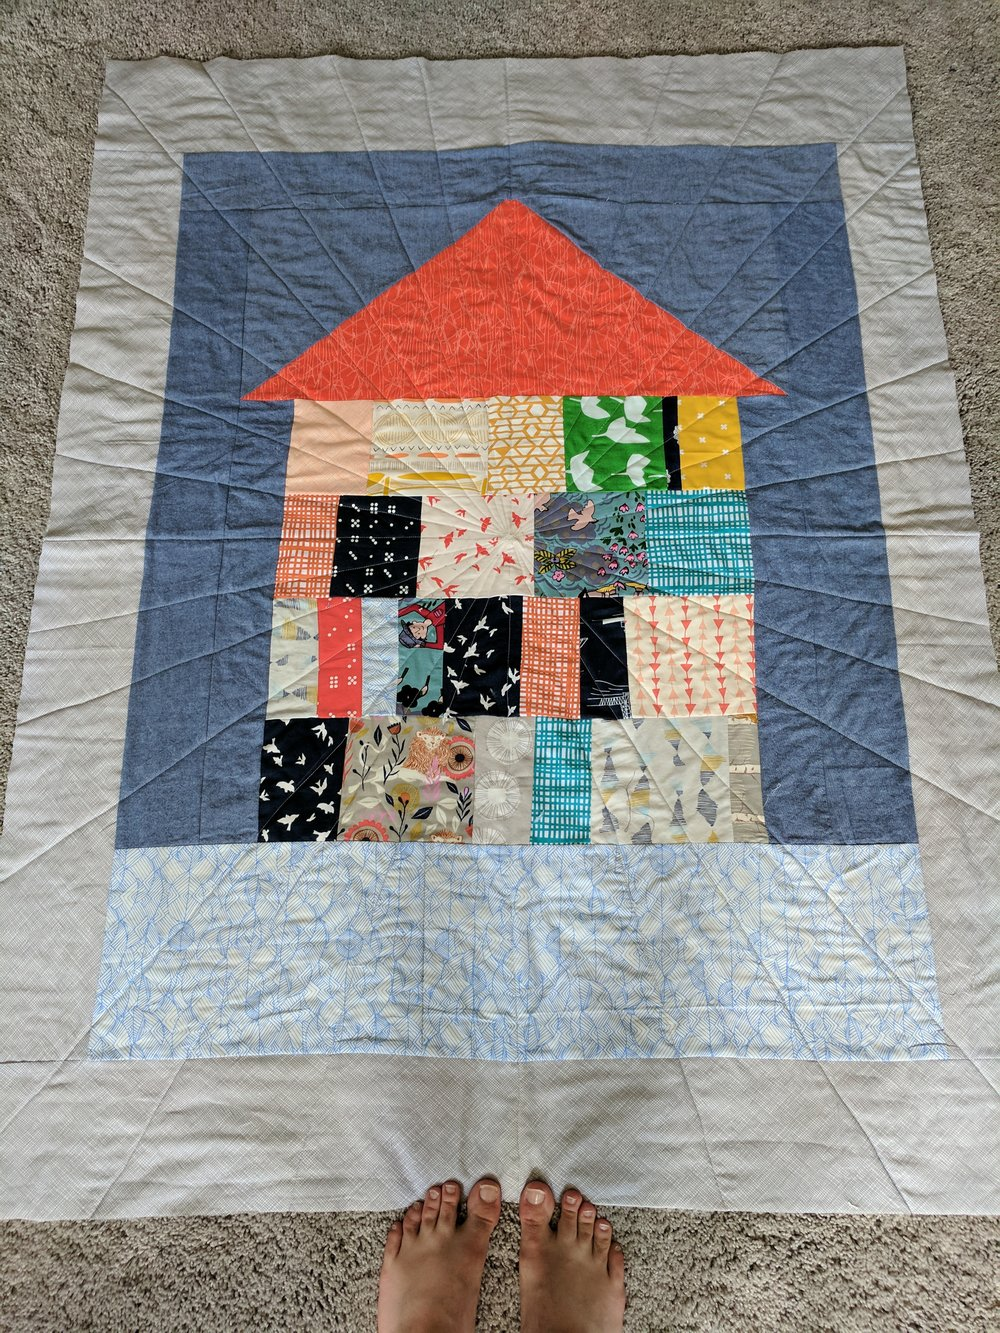 Zoe and I collaborated on this baby quilt for my nephew Cooper. Zoe found the orange triangle in a scrap bucket and thought it looked like a roof. She laid it out on the floor of the sewing room while I was working on something else, and started to make a rectangle beneath it out of other scraps. She found the big blue rectangle and thought it looked like water. She called it The Lake House Quilt.